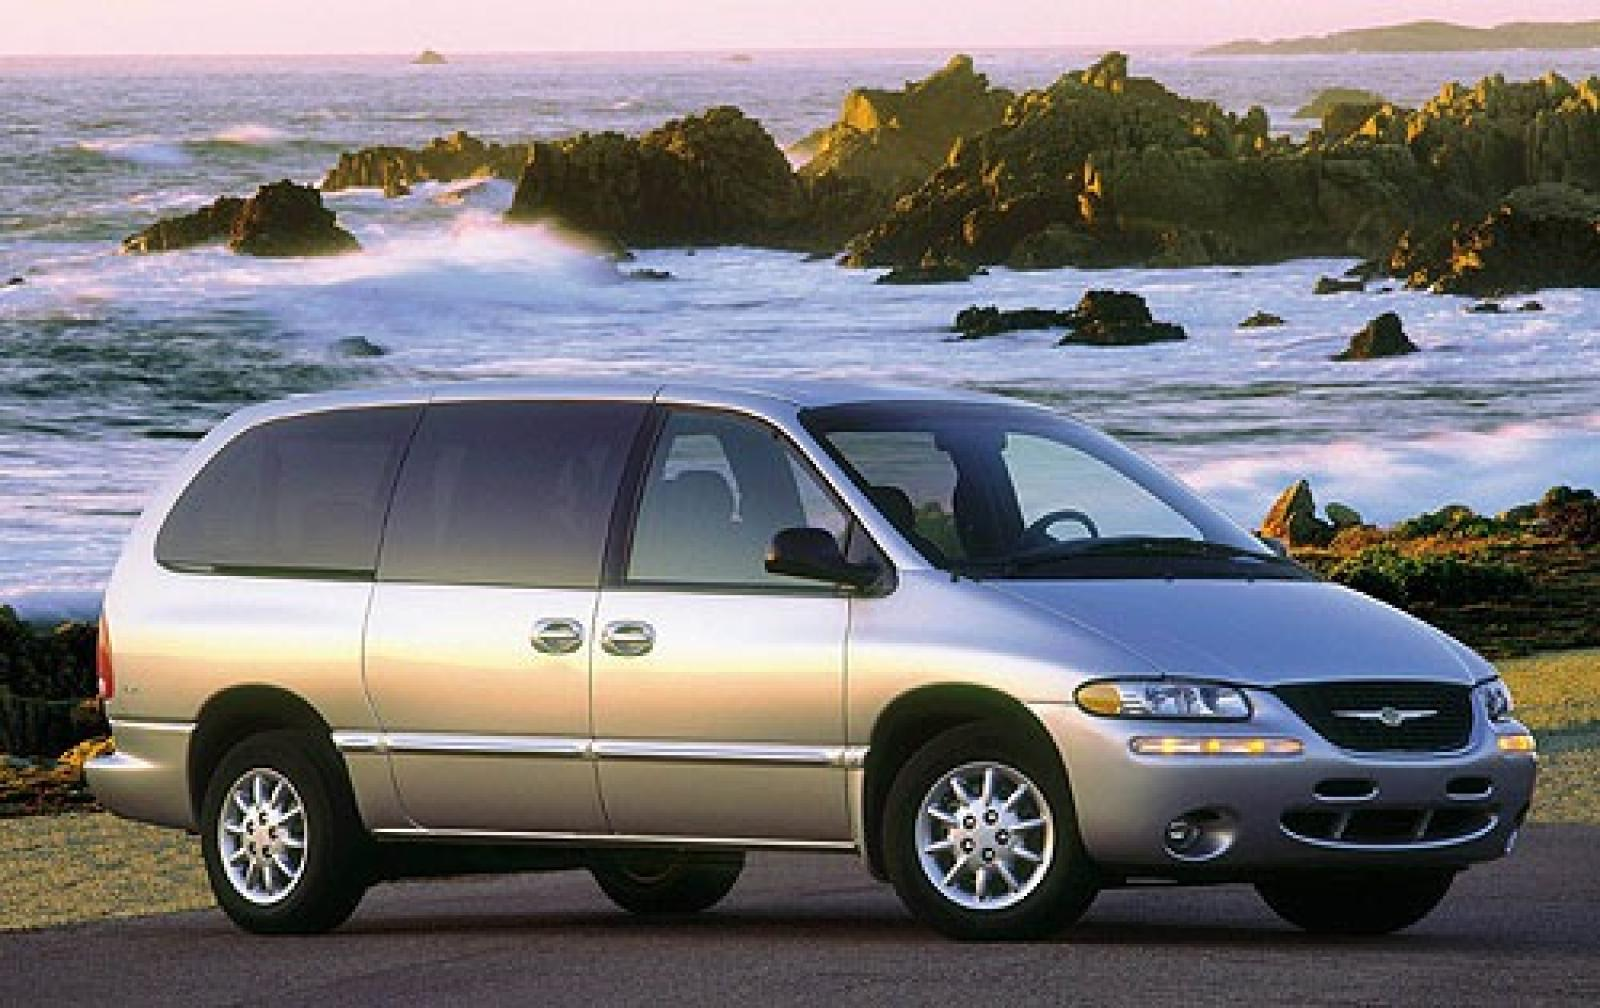 2001 chrysler town and country information and photos zombiedrive. Cars Review. Best American Auto & Cars Review